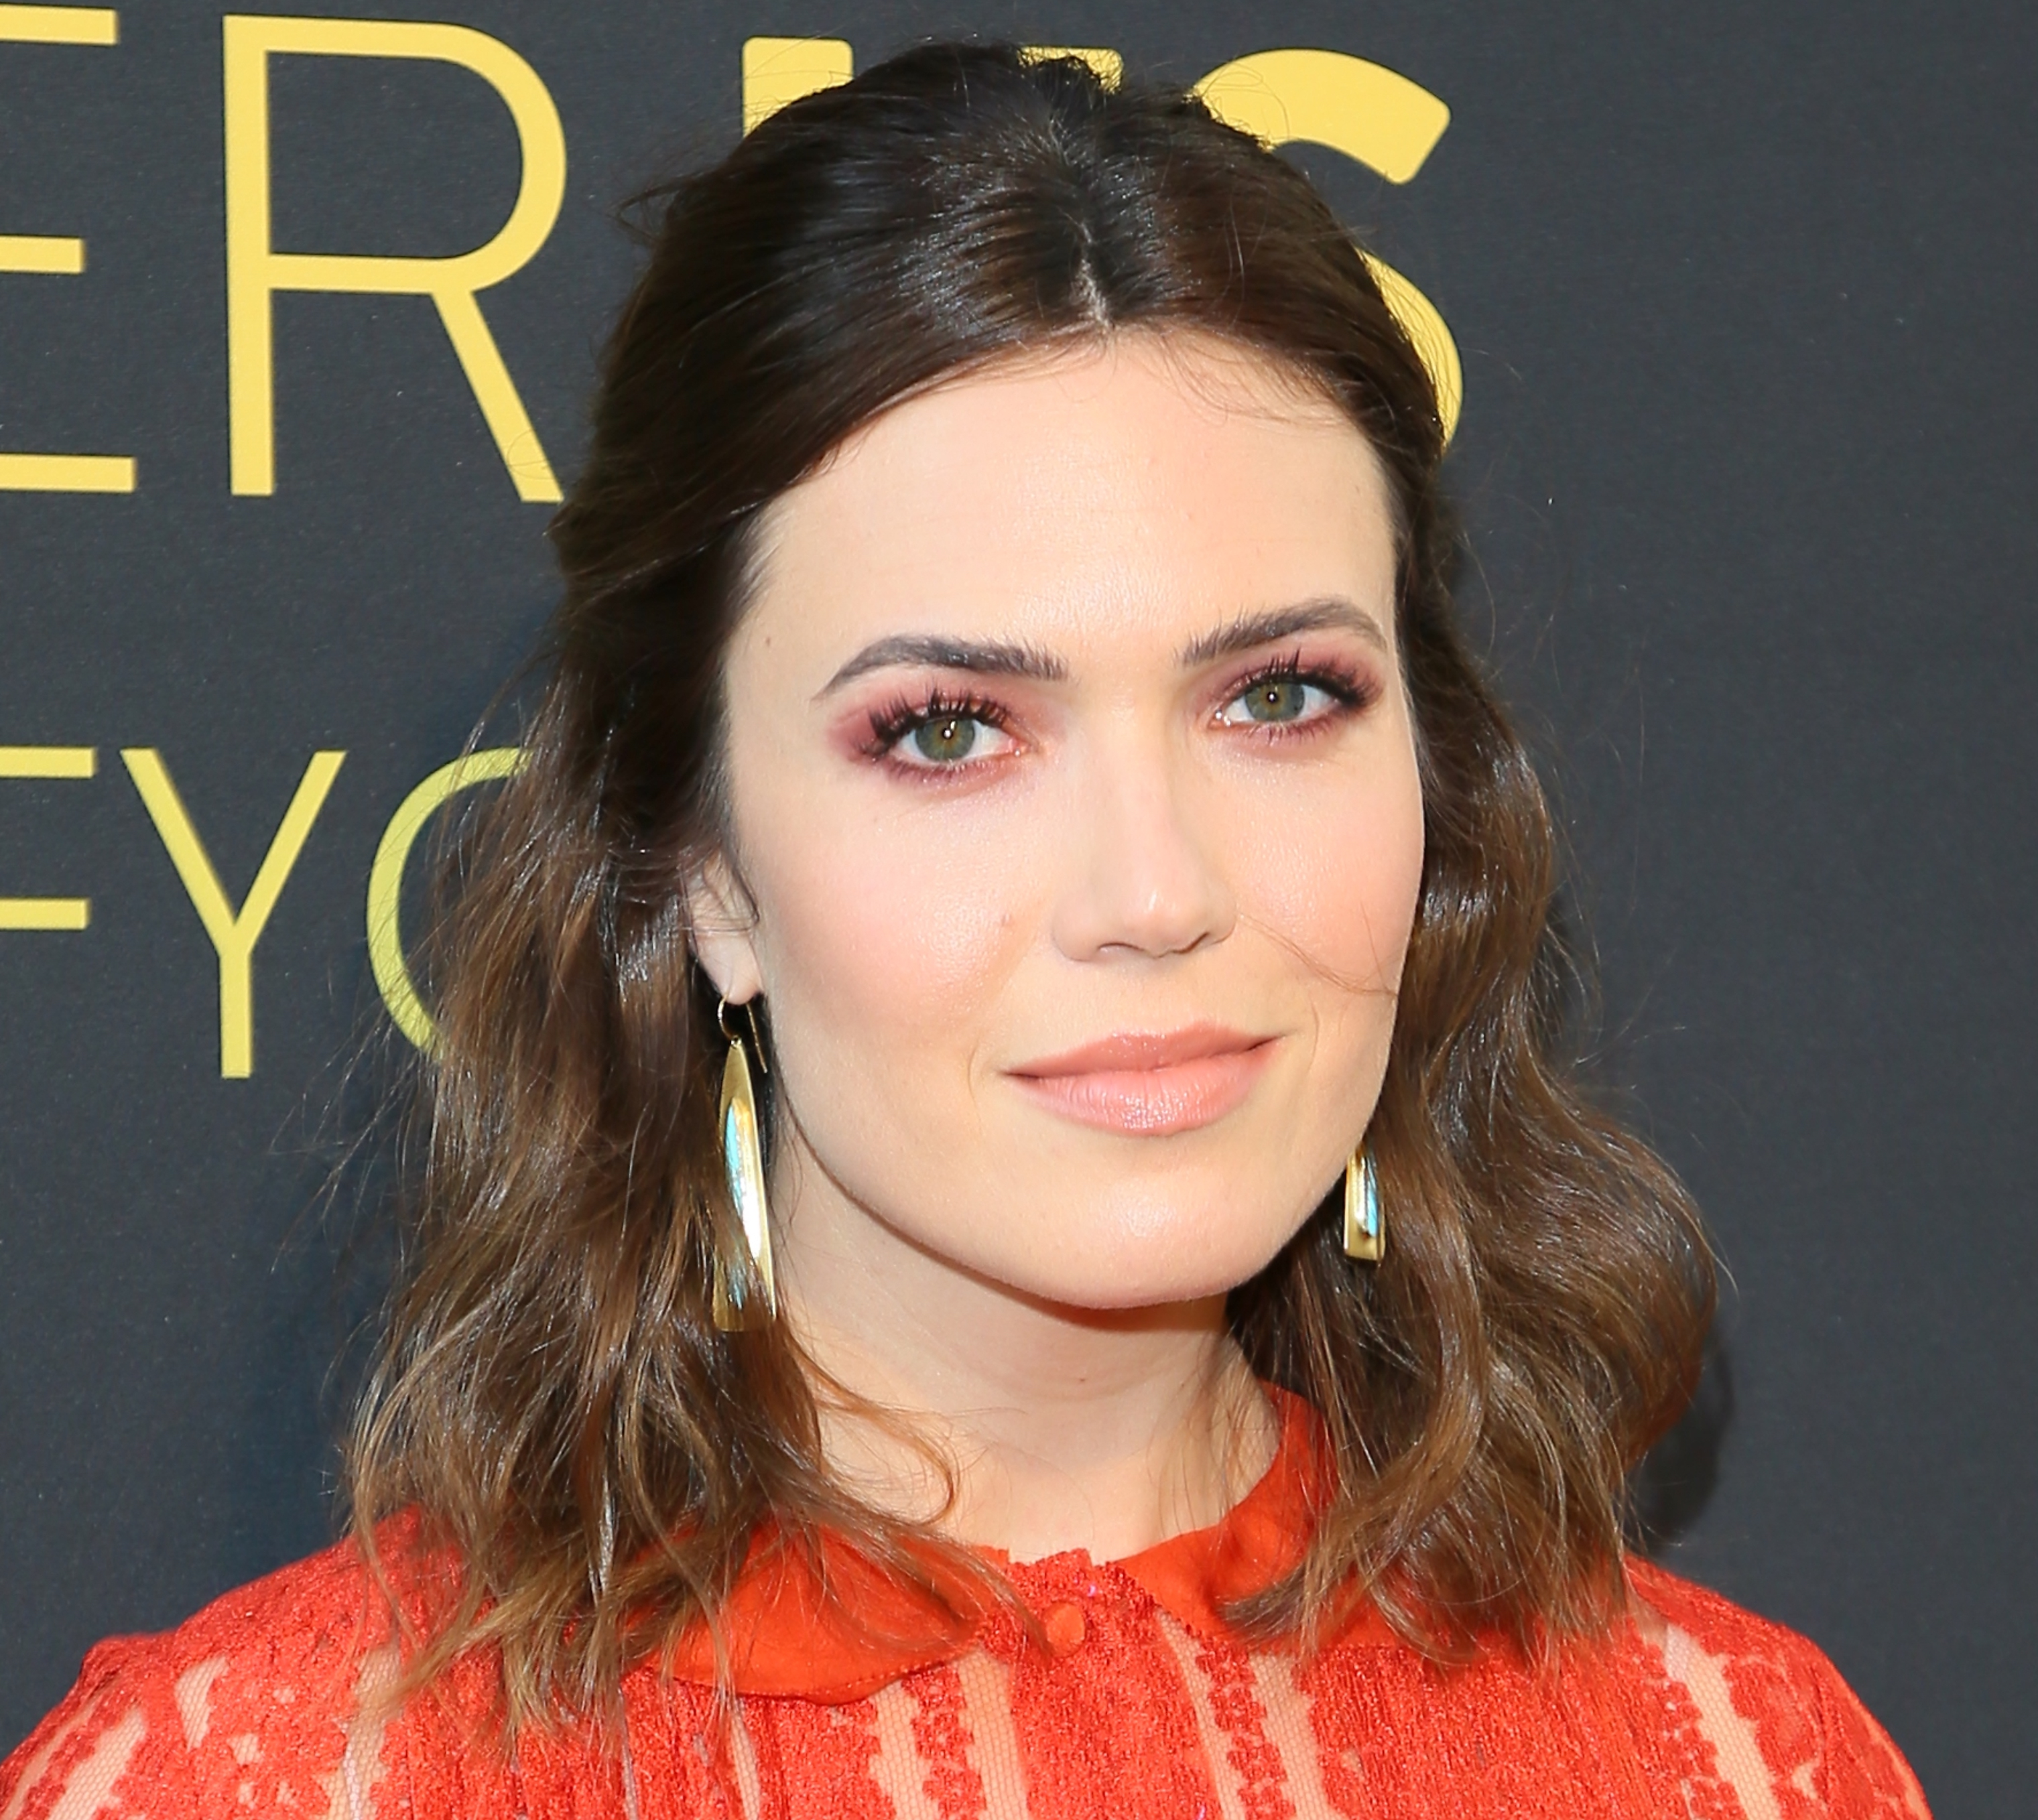 Mandy Moore opened up about her engagement, revealing that she wants an intimate wedding